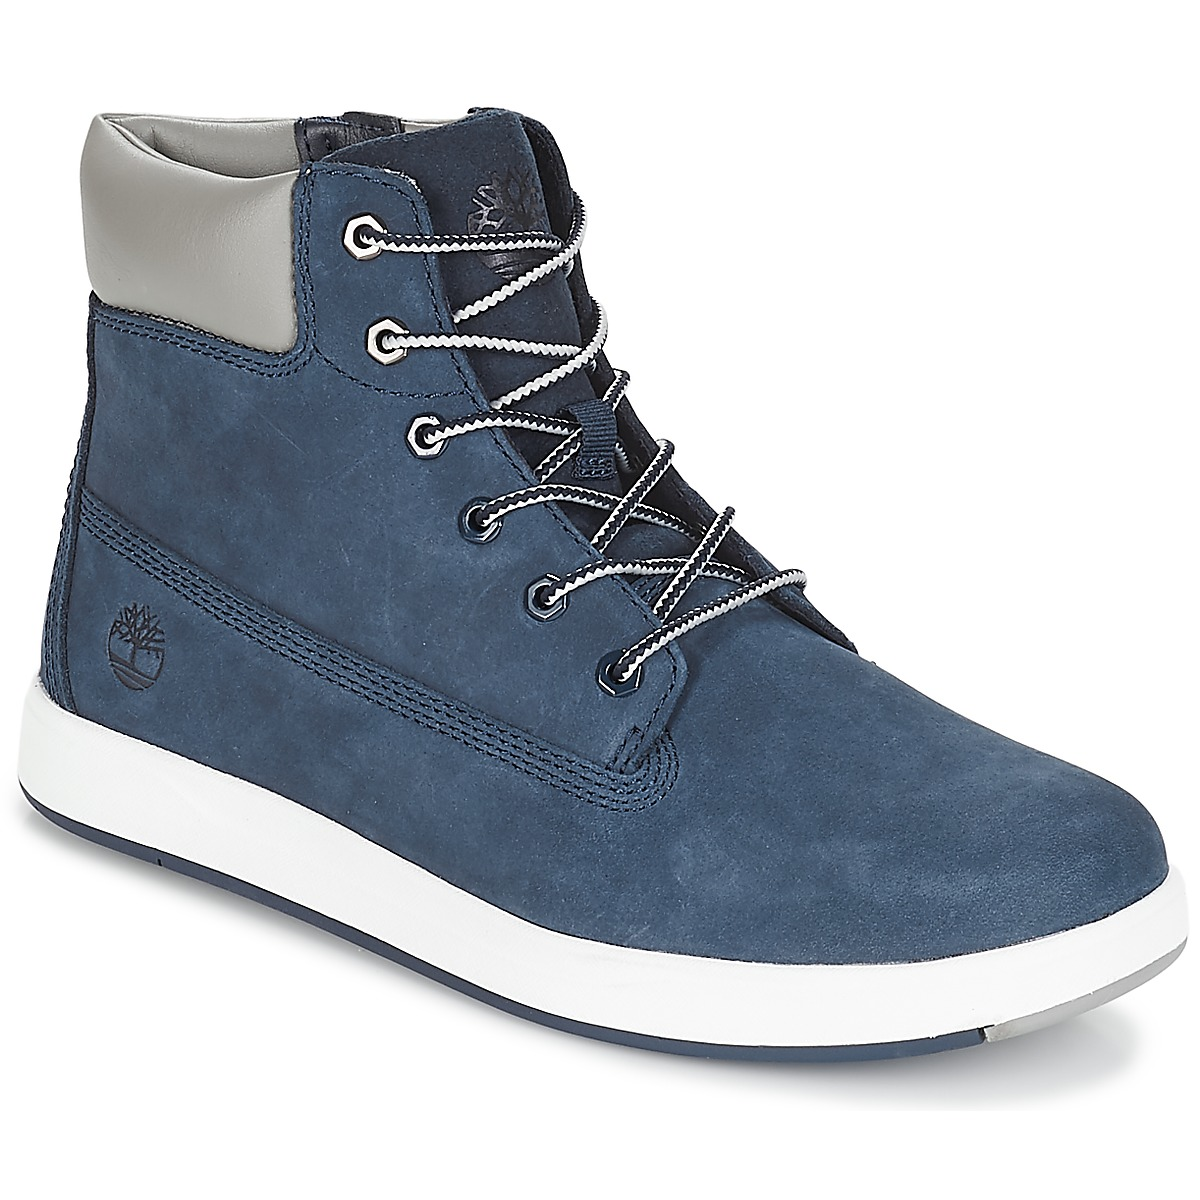 Se Sneakers Timberland  Davis Square 6 Inch Boot ved Spartoo